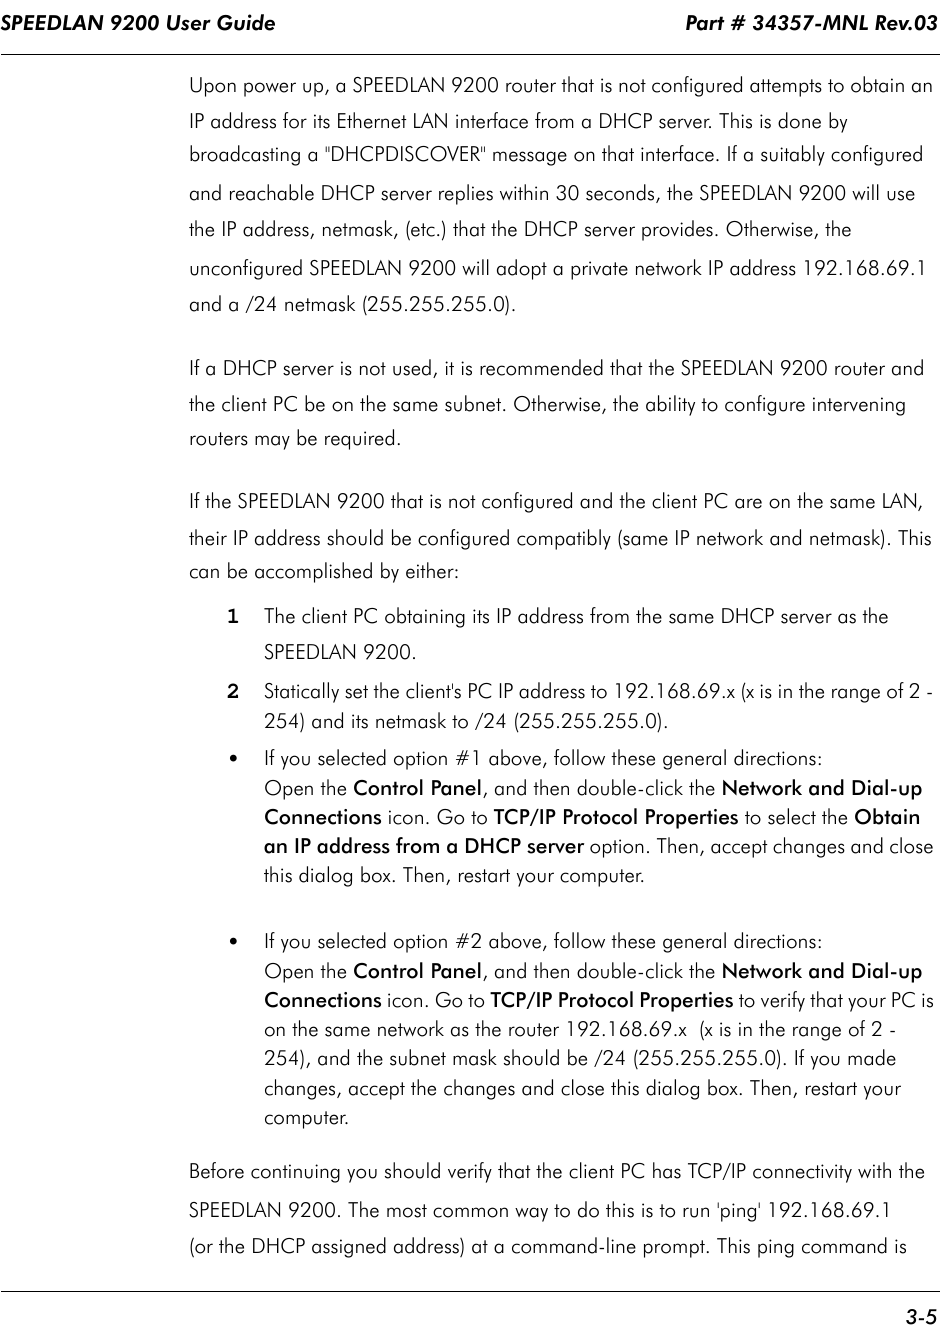 """SPEEDLAN 9200 User Guide                                                                    Part # 34357-MNL Rev.03      3-5                                                                                                                                                              Upon power up, a SPEEDLAN 9200 router that is not configured attempts to obtain an IP address for its Ethernet LAN interface from a DHCP server. This is done by broadcasting a """"DHCPDISCOVER"""" message on that interface. If a suitably configured and reachable DHCP server replies within 30 seconds, the SPEEDLAN 9200 will use the IP address, netmask, (etc.) that the DHCP server provides. Otherwise, the unconfigured SPEEDLAN 9200 will adopt a private network IP address 192.168.69.1 and a /24 netmask (255.255.255.0).If a DHCP server is not used, it is recommended that the SPEEDLAN 9200 router and the client PC be on the same subnet. Otherwise, the ability to configure intervening routers may be required.  If the SPEEDLAN 9200 that is not configured and the client PC are on the same LAN, their IP address should be configured compatibly (same IP network and netmask). This can be accomplished by either:1The client PC obtaining its IP address from the same DHCP server as the SPEEDLAN 9200.2Statically set the client's PC IP address to 192.168.69.x (x is in the range of 2 - 254) and its netmask to /24 (255.255.255.0). •If you selected option #1 above, follow these general directions: Open the Control Panel, and then double-click the Network and Dial-up Connections icon. Go to TCP/IP Protocol Properties to select the Obtain an IP address from a DHCP server option. Then, accept changes and close this dialog box. Then, restart your computer. •If you selected option #2 above, follow these general directions: Open the Control Panel, and then double-click the Network and Dial-up Connections icon. Go to TCP/IP Protocol Properties to verify that your PC is on the same network as the router 192.168.69.x  (x is """